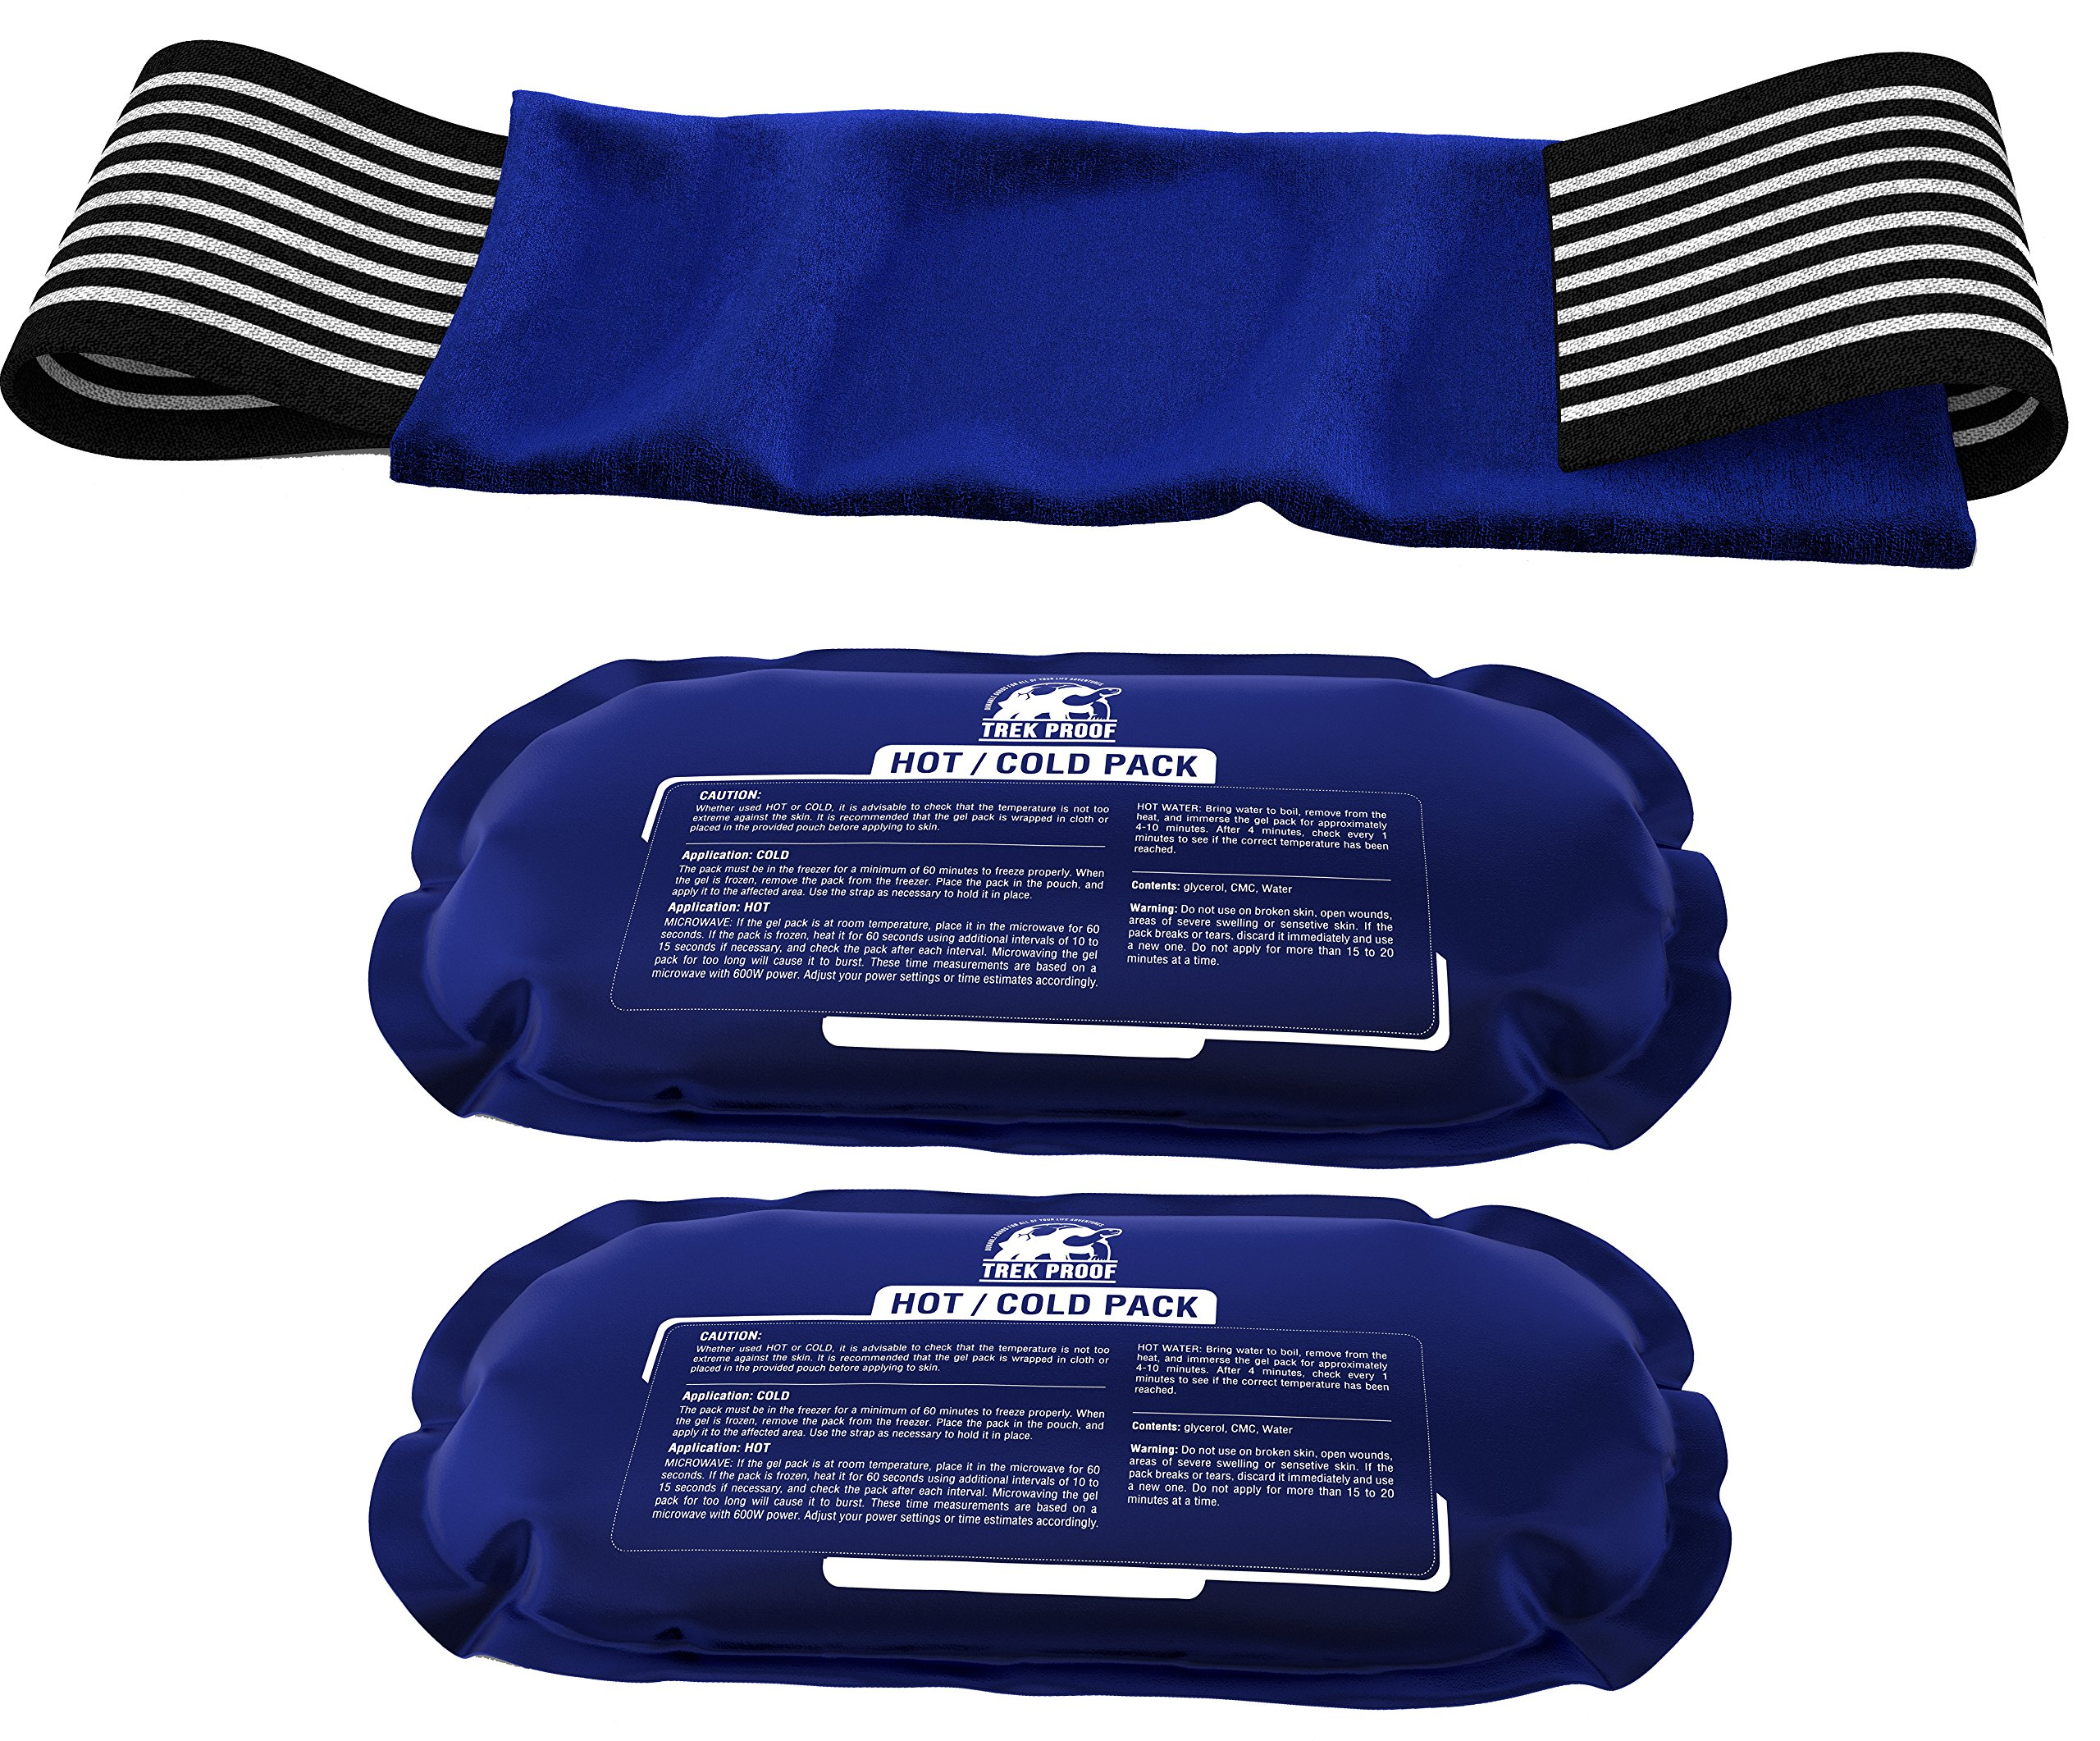 Ice Pack (2-Piece Set) – Reusable Hot and Cold Therapy Gel Wrap Support Injury Recovery, Alleviate Joint and Muscle Pain – Rotator Cuff, Knees, Back & More by TrekProof